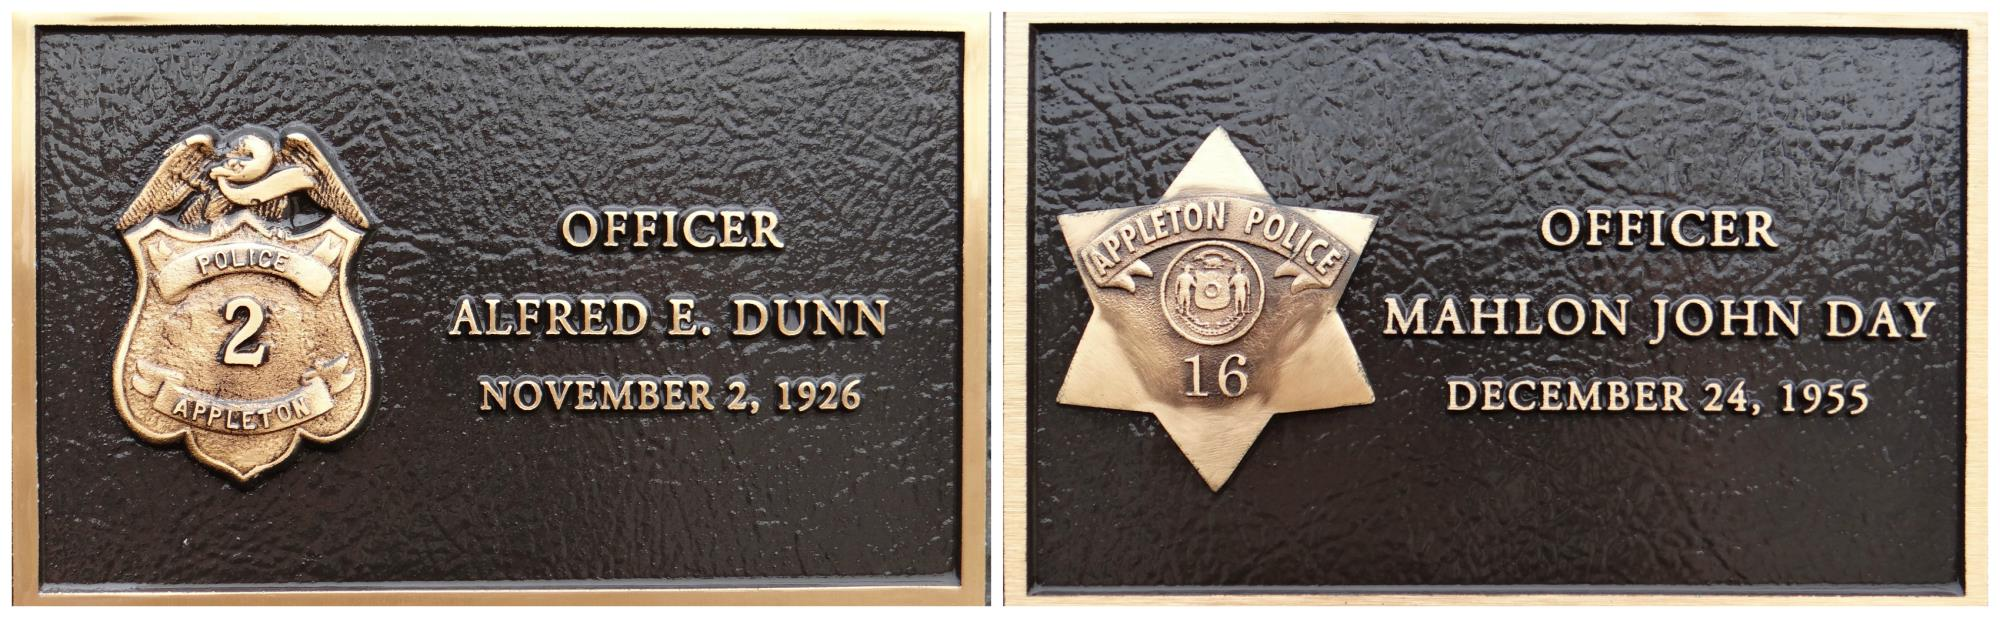 Collage of Dunn and Day Plaques